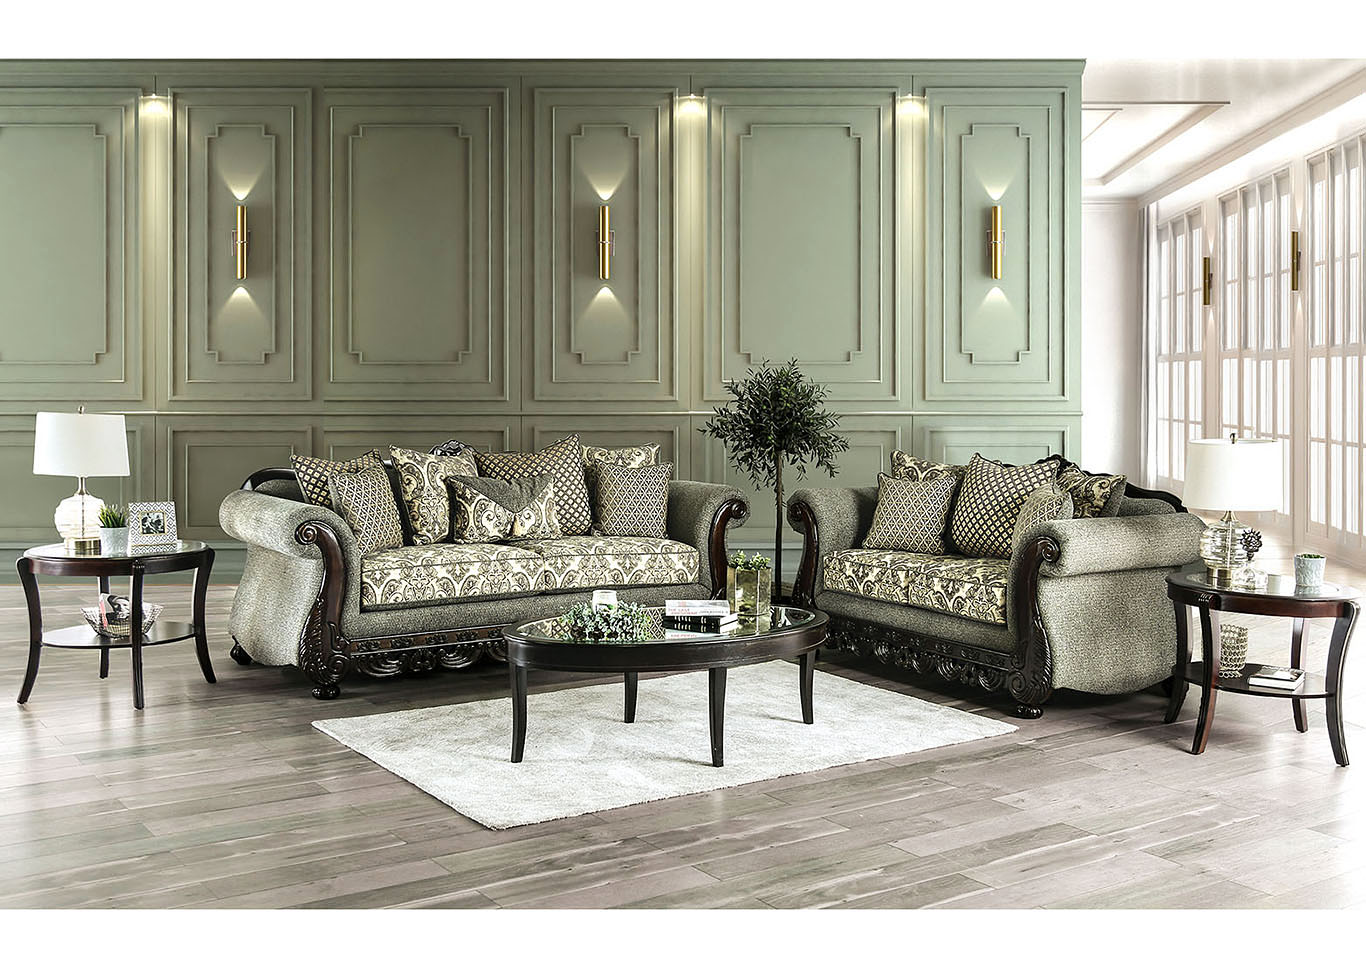 Gray Sofas For Living Room Ideal Furniture San Antonio West Justina Gray Sofa Loveseat